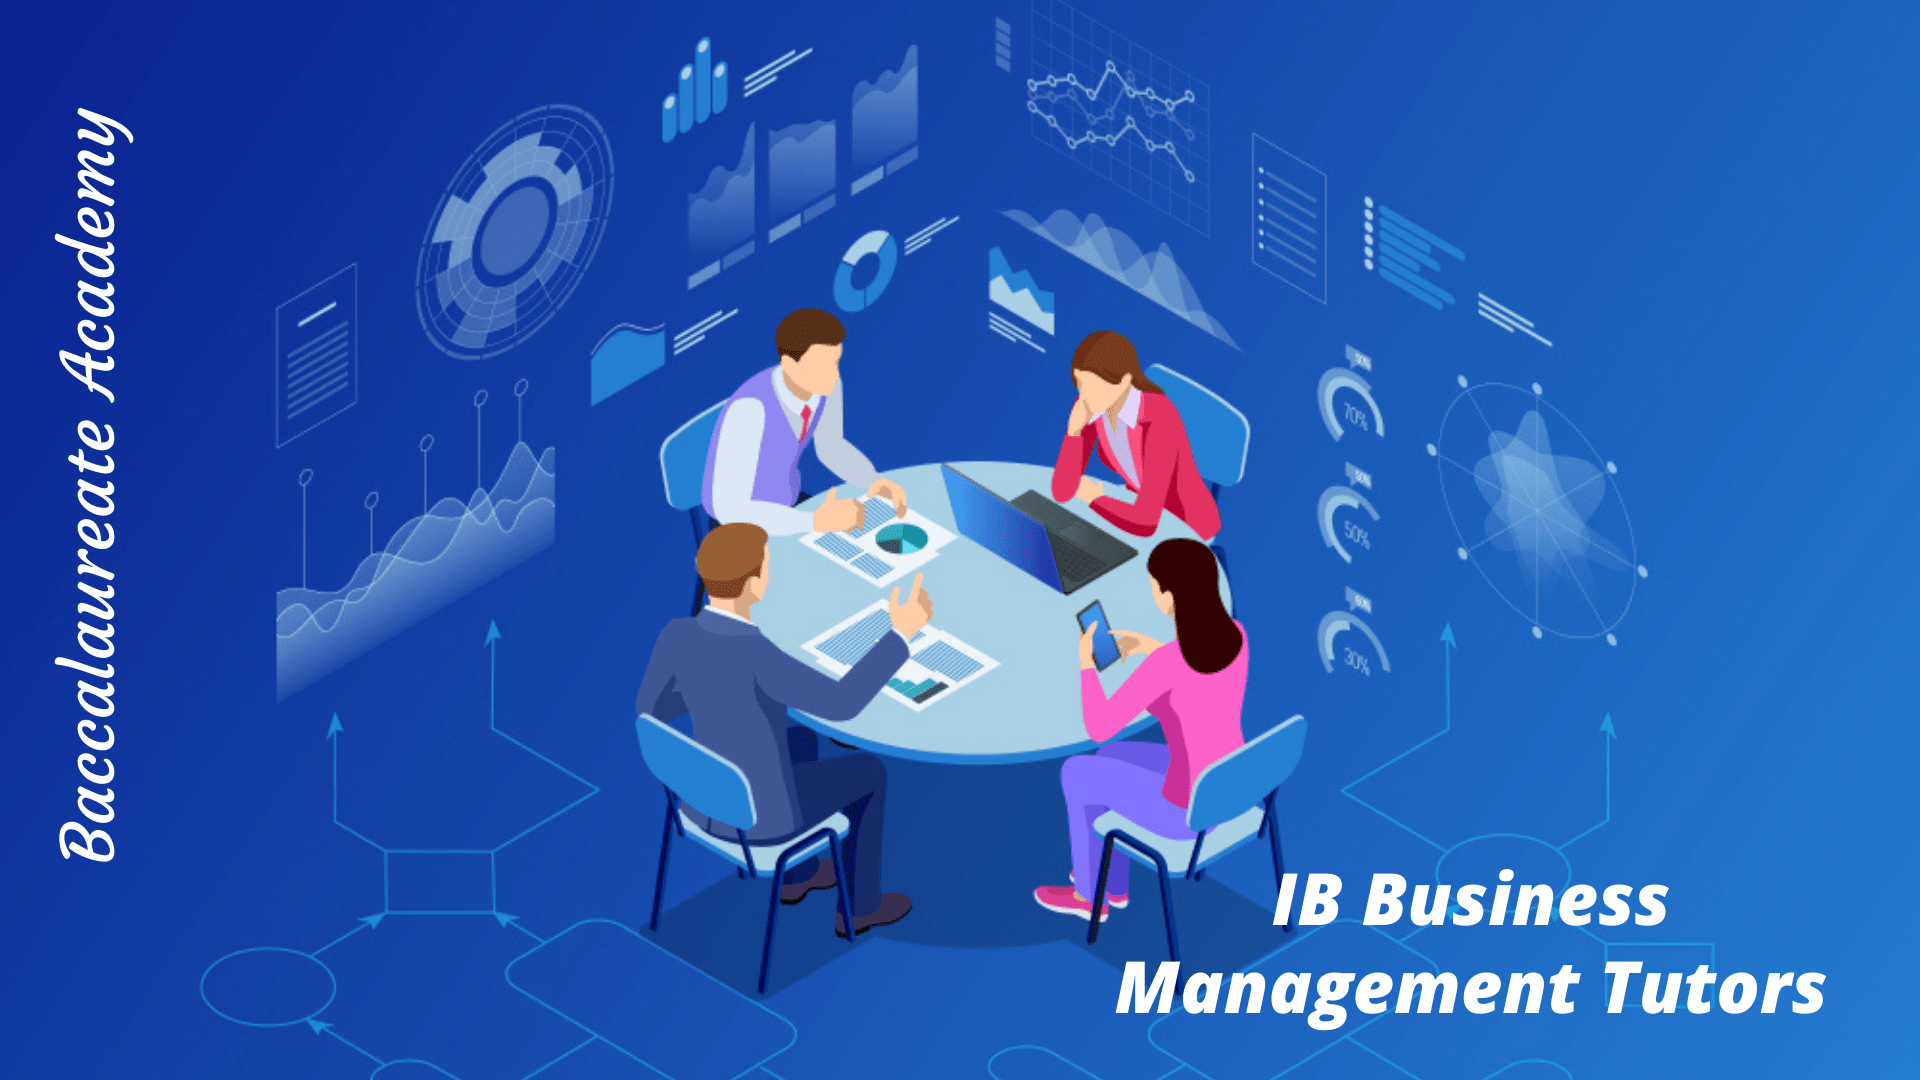 IB Business Management Tutors | Online IB Business Management Tutor- Baccalaureate Academy